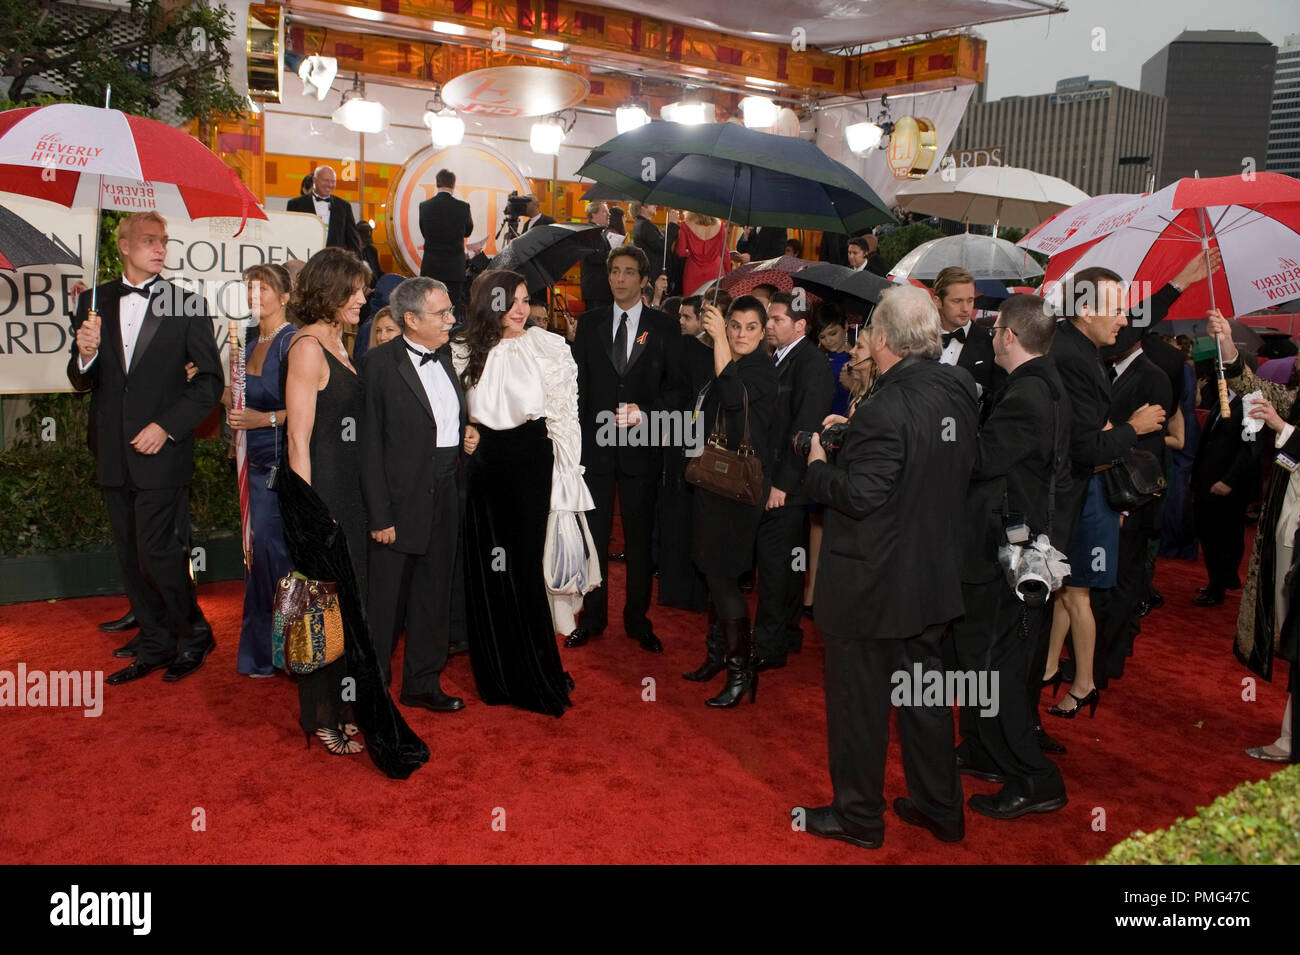 Italian composer Carlo Siliotto and guests arrive at the 67th Annual Golden Globe Awards at the Beverly Hilton in Beverly Hills, CA Sunday, January 17, 2010. - Stock Image